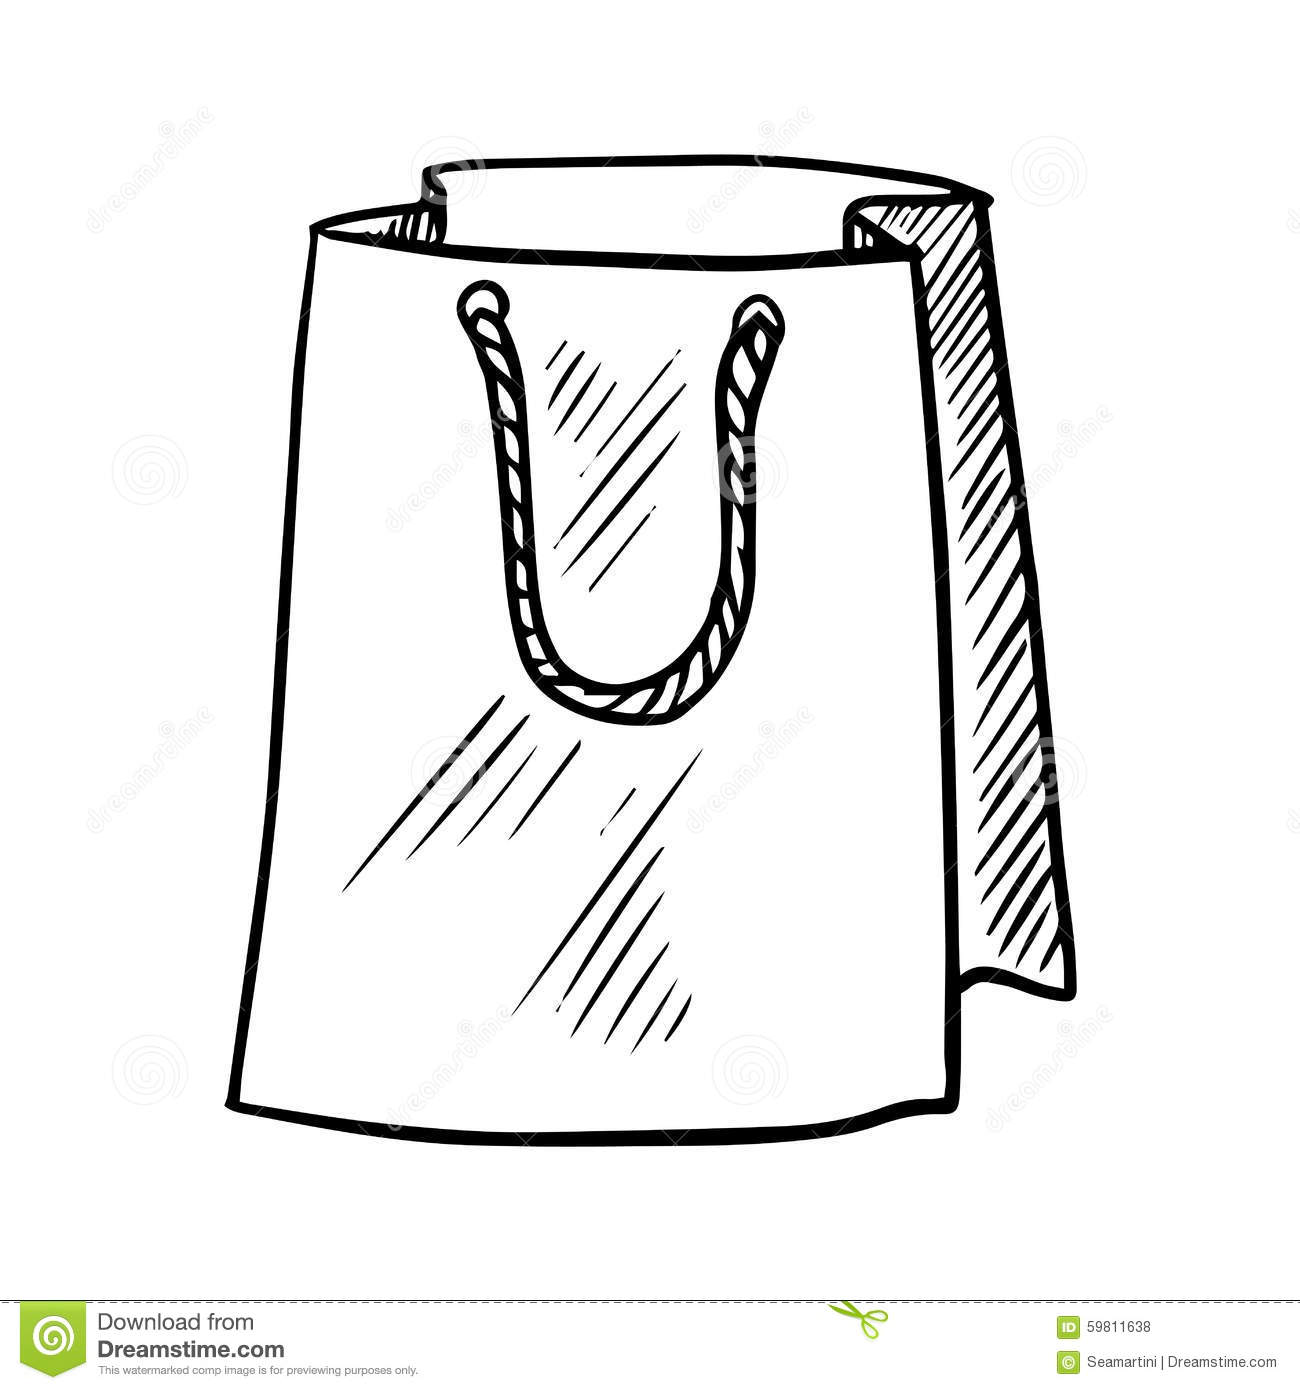 Sketch Of Paper Shopping Bag Stock Vector